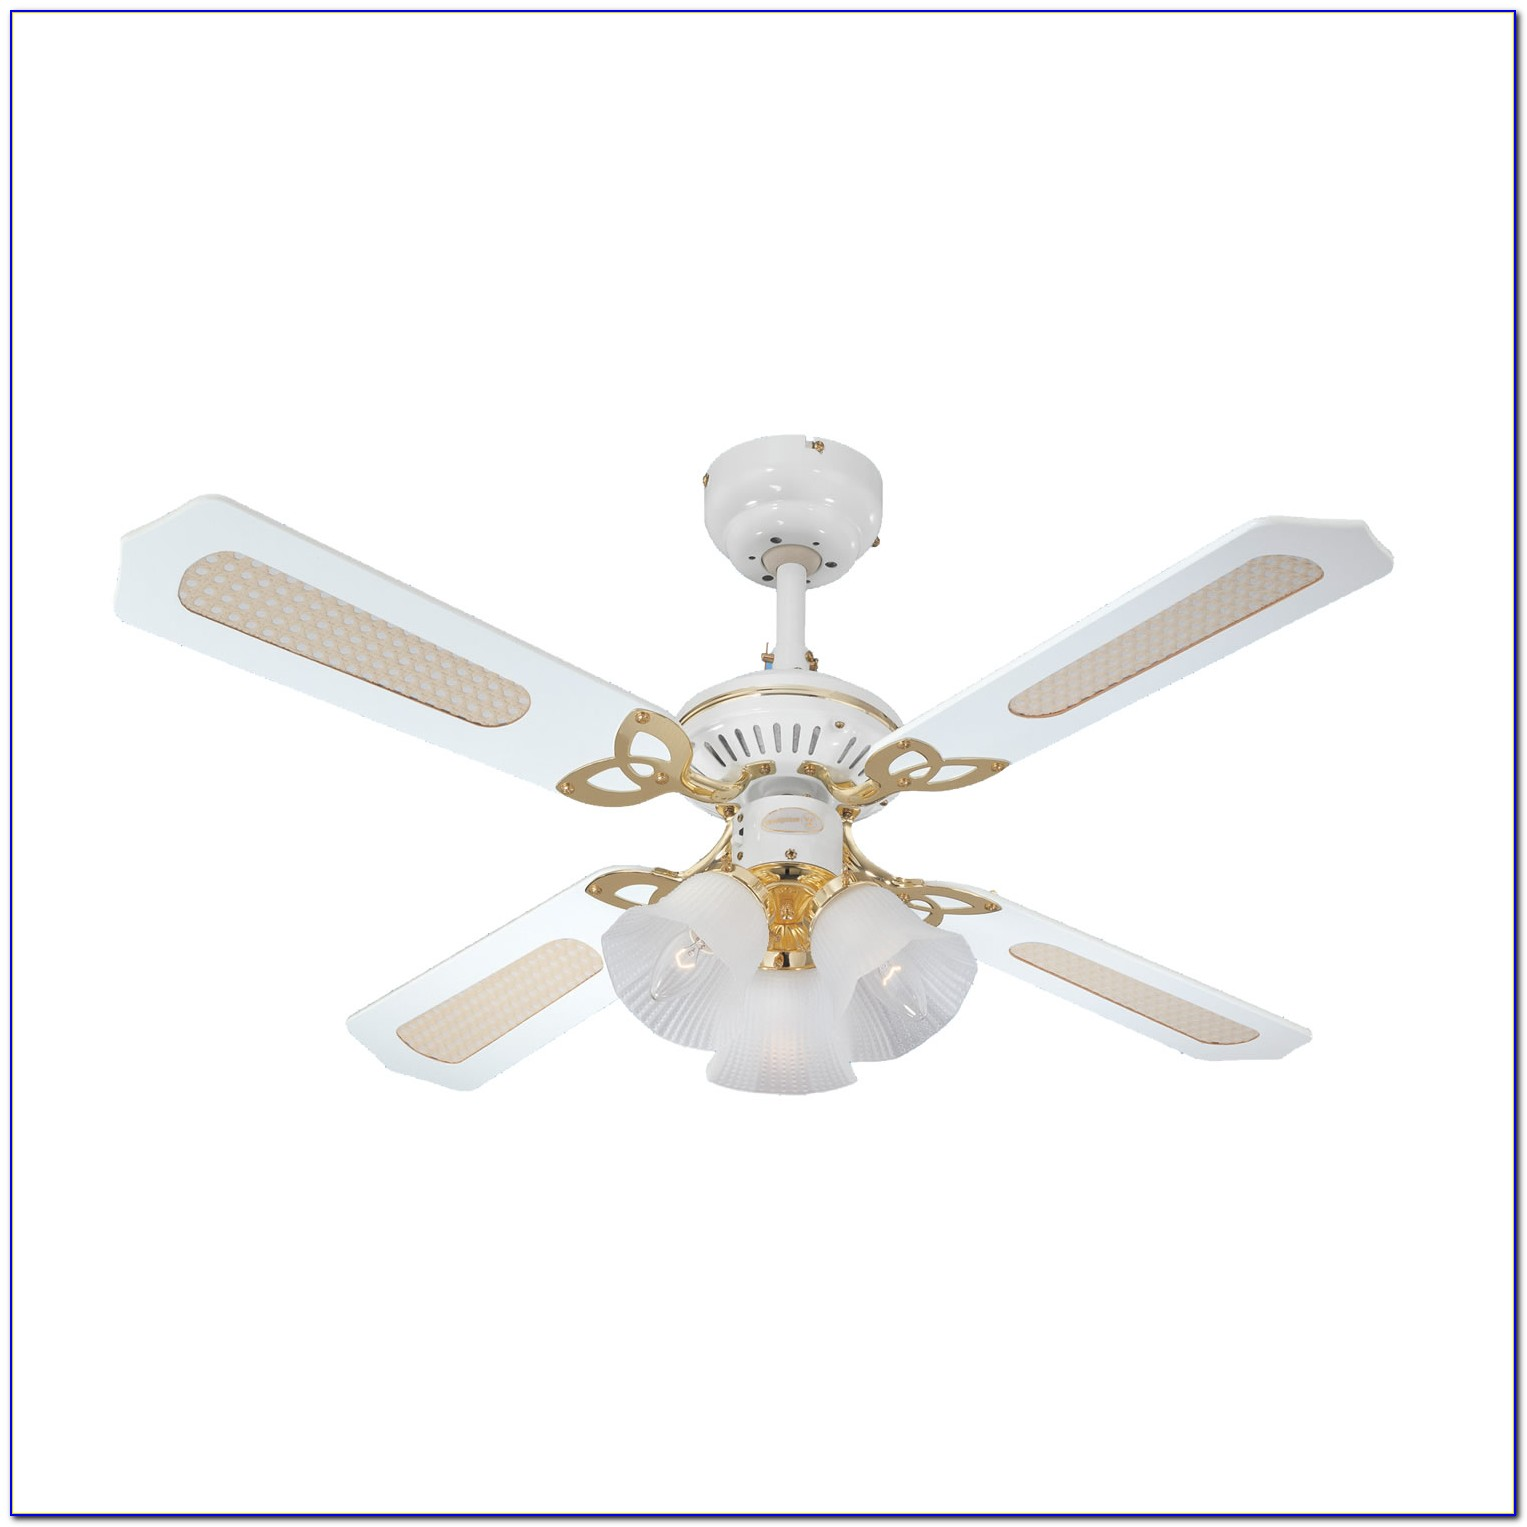 Westinghouse Ceiling Fan Swag Light Kit